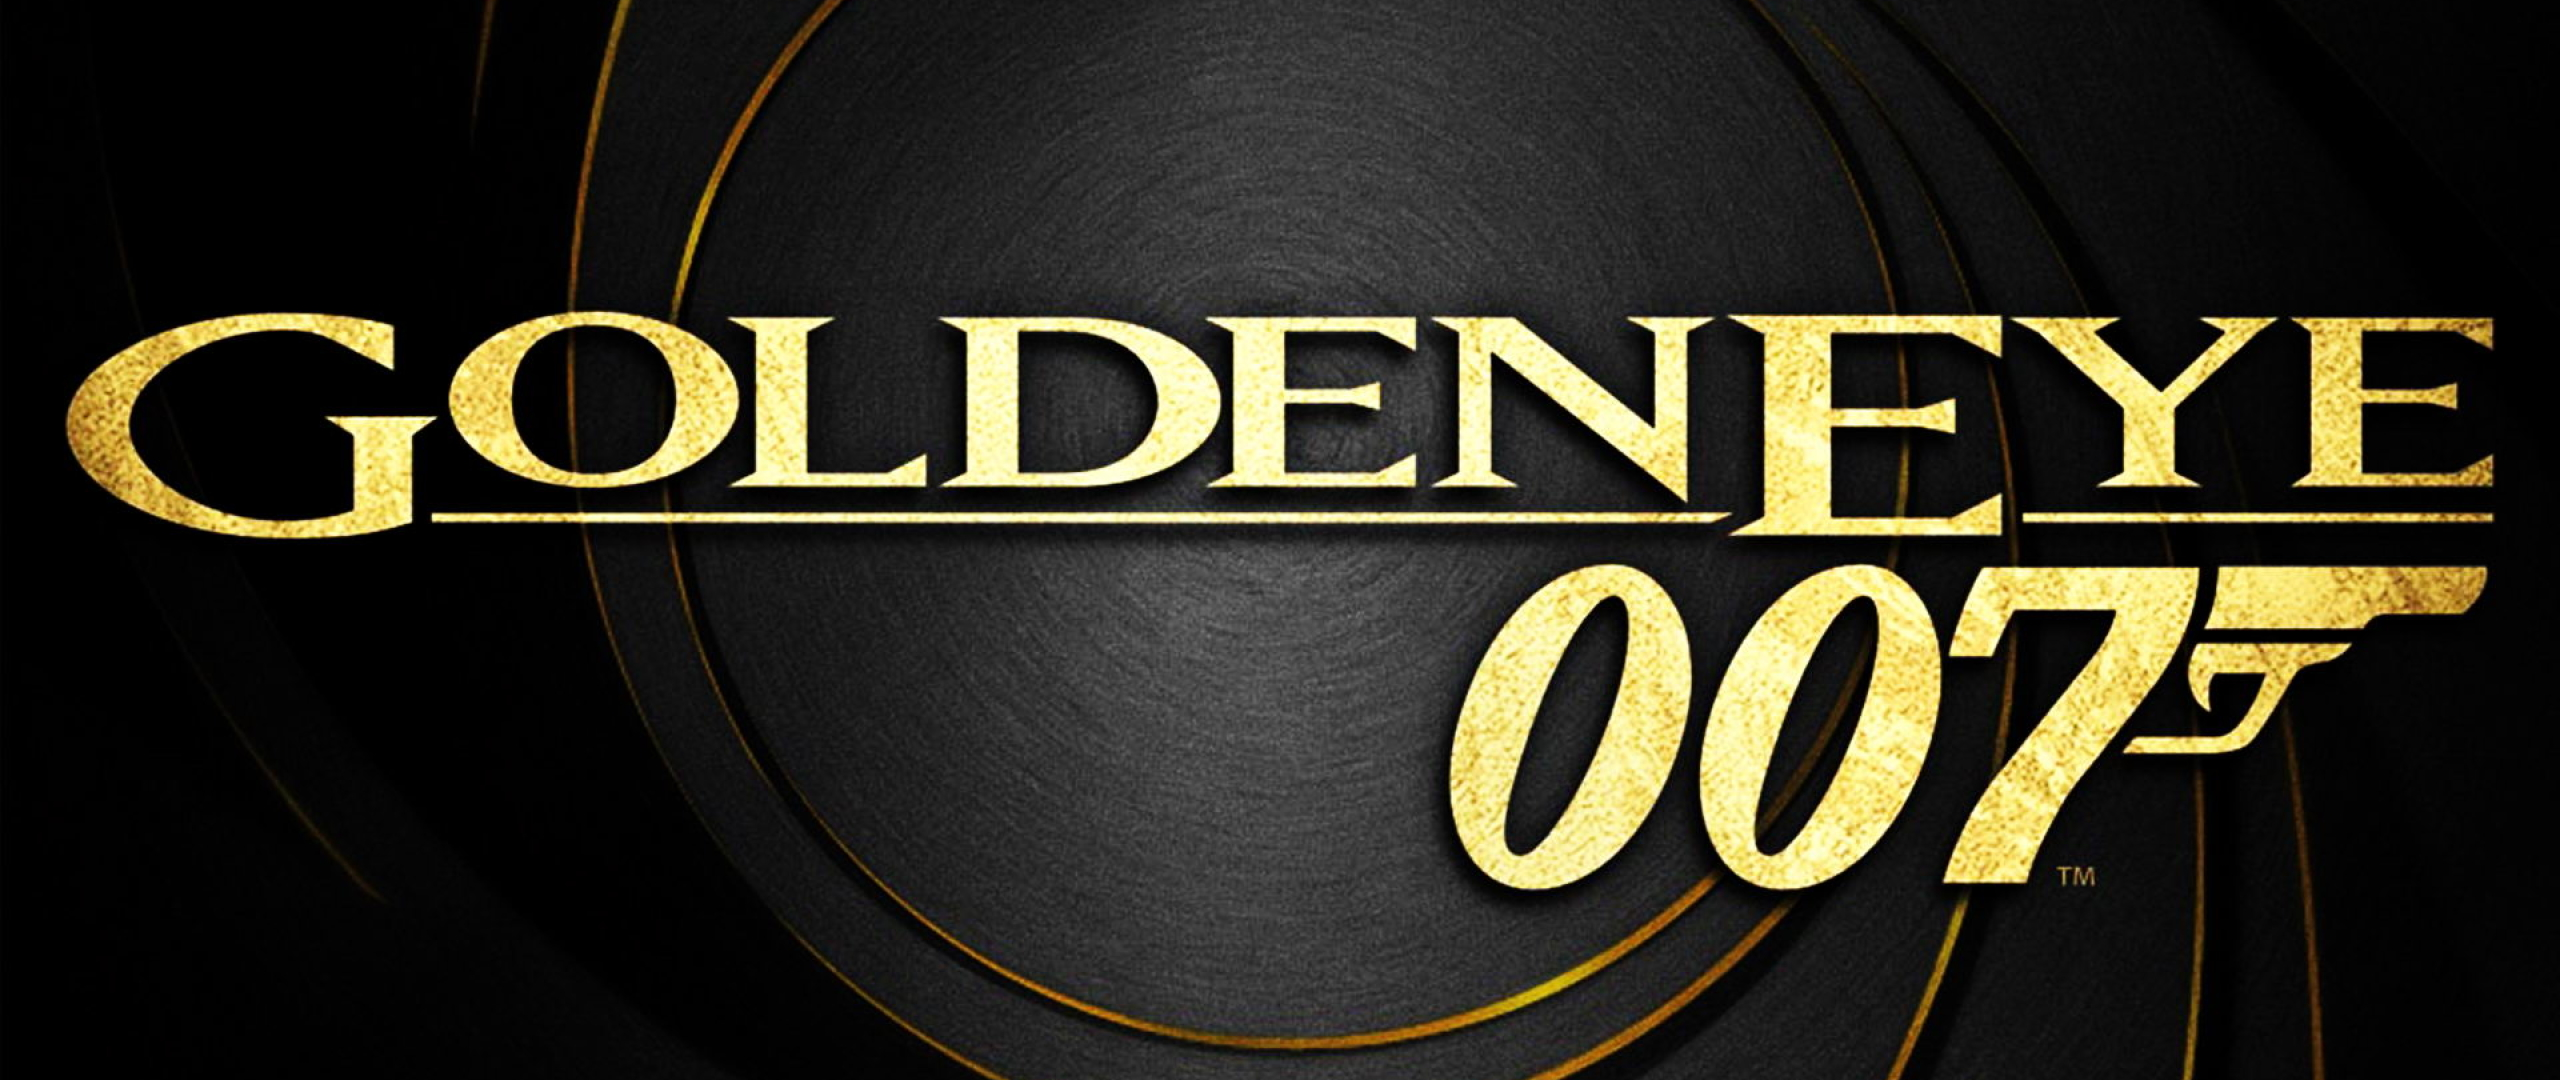 2560x1080 Goldeneye 007 Eurocom Entertainment Software Nintendo 64 2560x1080 Resolution Wallpaper Hd Games 4k Wallpapers Images Photos And Background